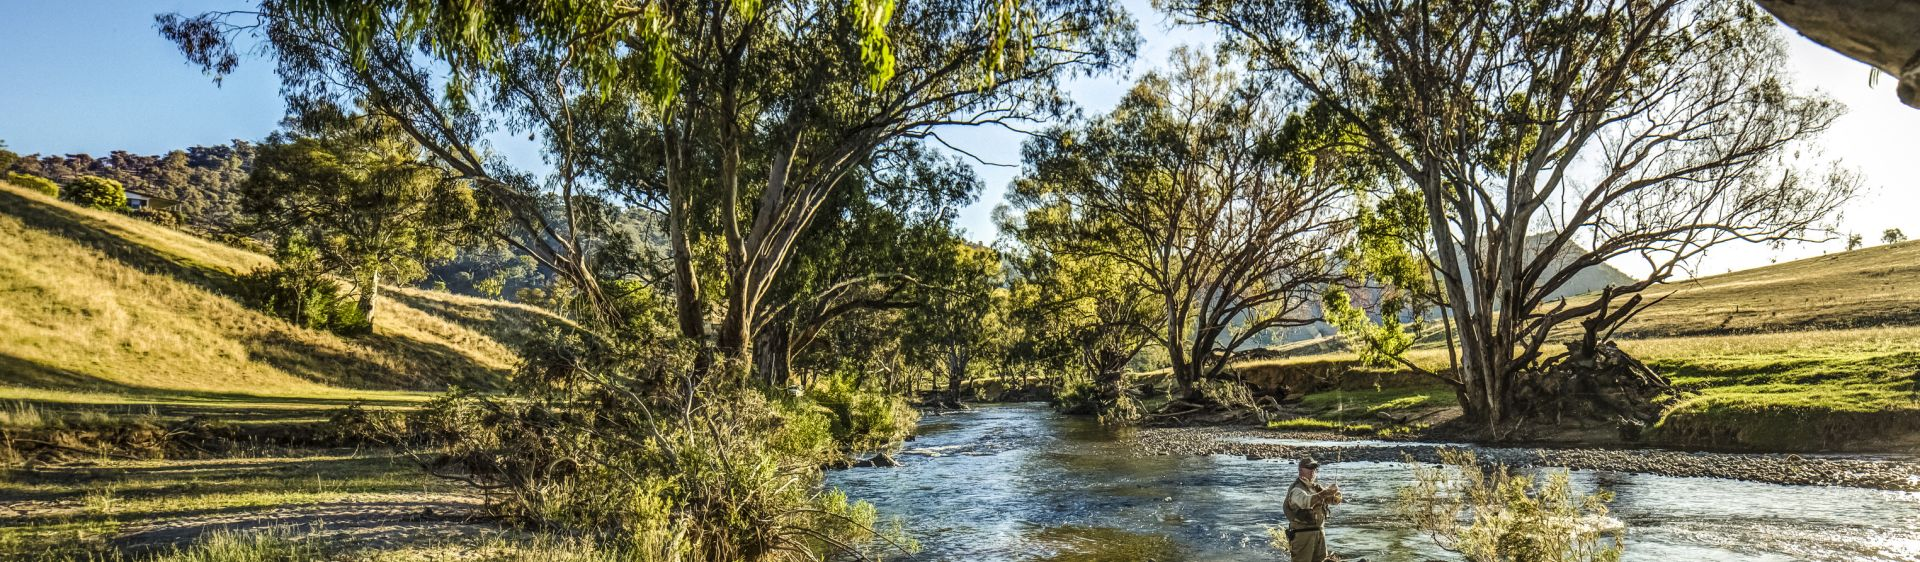 Tumut Fly Fishing - Kosciuszko National Park